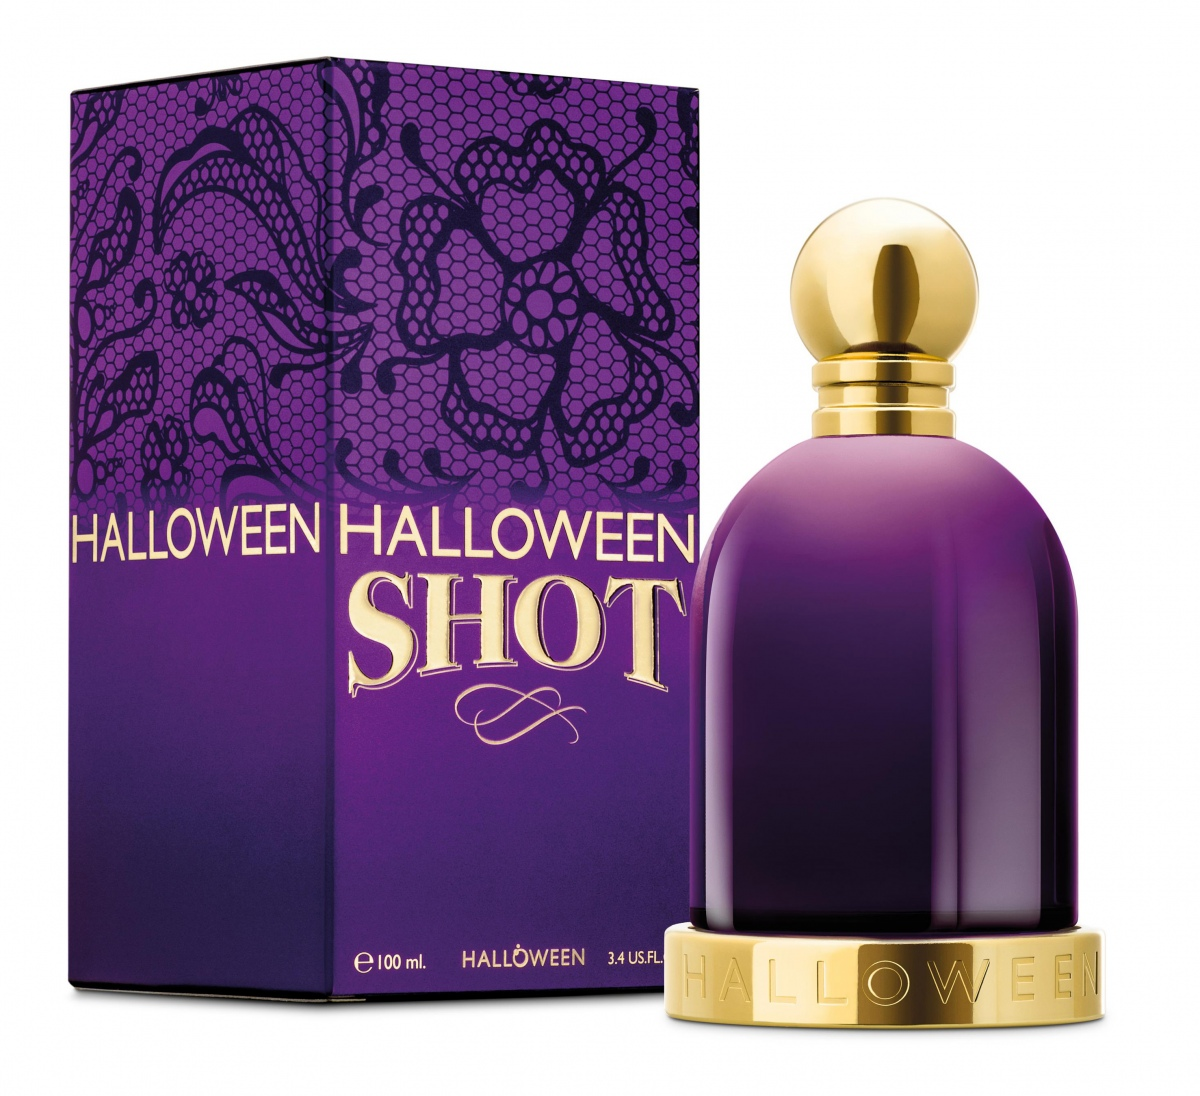 HALLOWEEN SHOT (100ml)